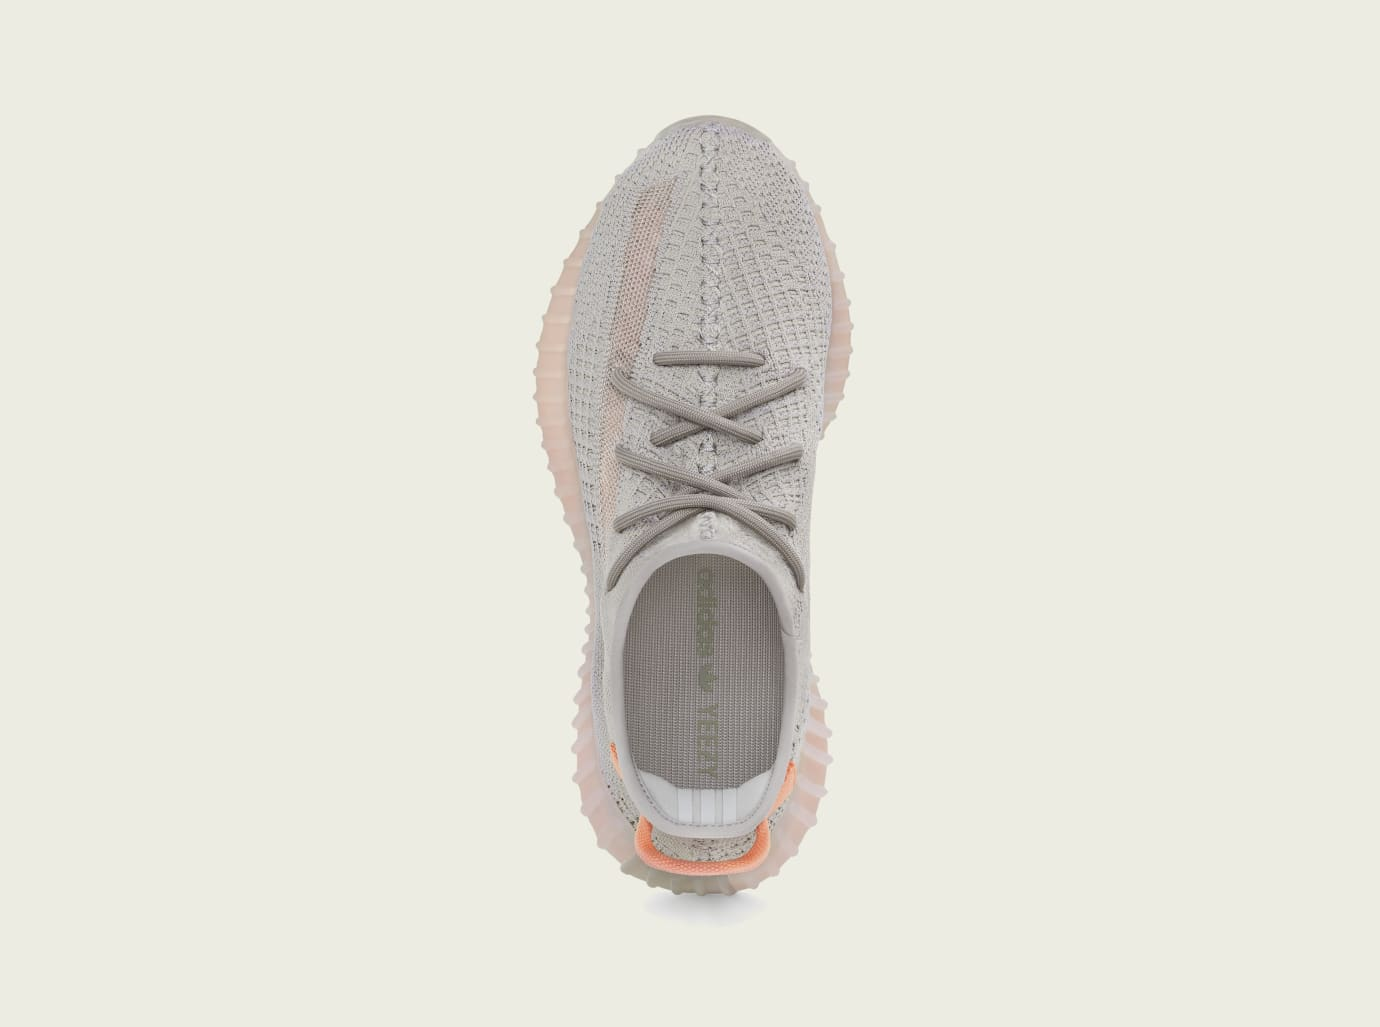 4a410358f76 Image via Adidas Adidas Yeezy Boost 350 V2  True Form  (Top)